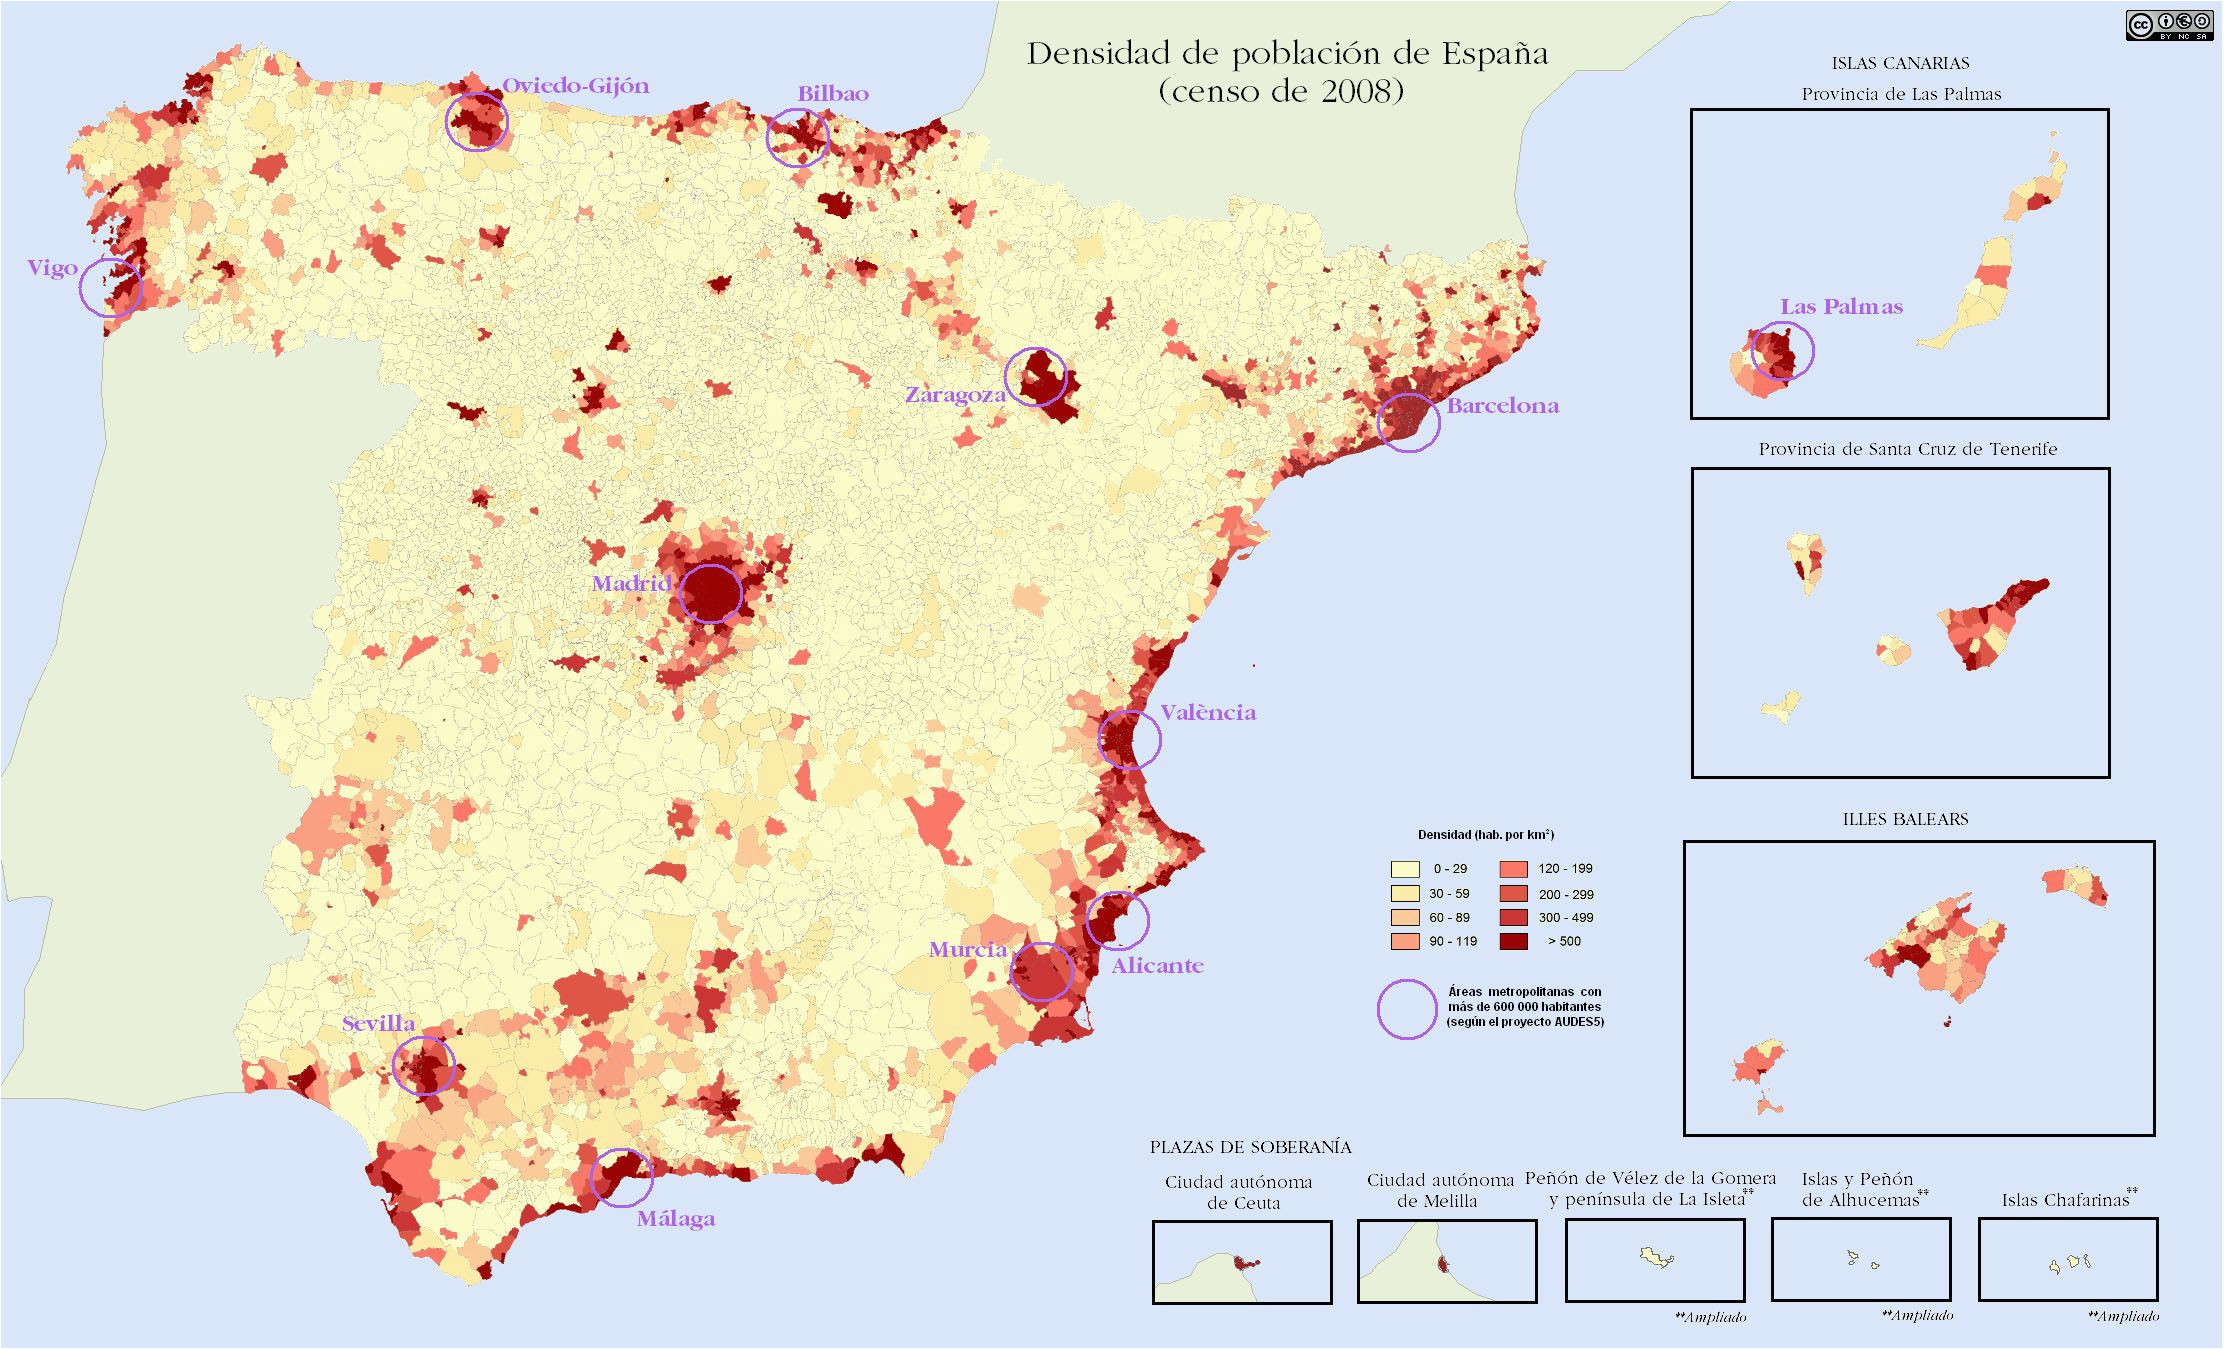 quantitative population density map of spain lighter colors